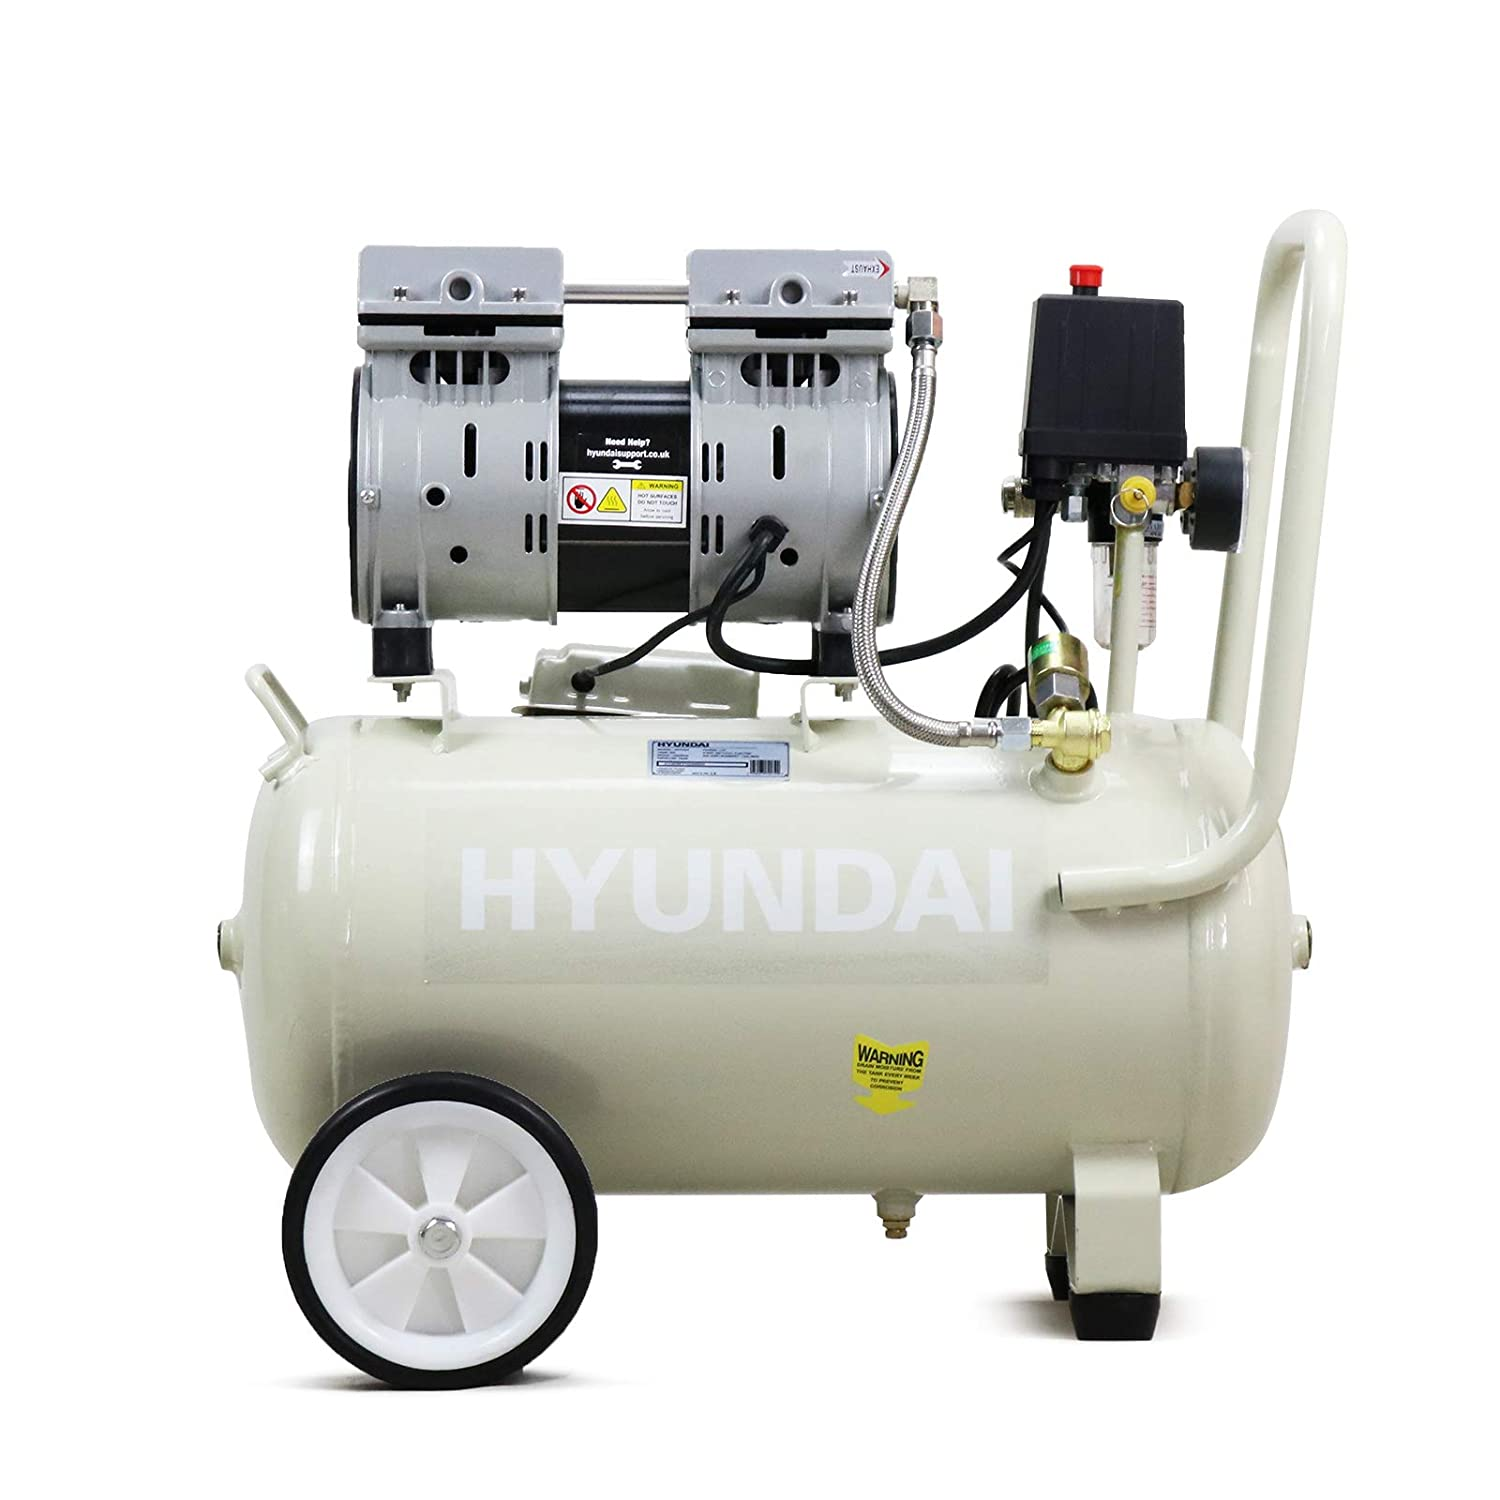 1HP 24 Litre Oil Free Direct Drive Silenced Air Compressor Hyundai HY7524 5.2CFM